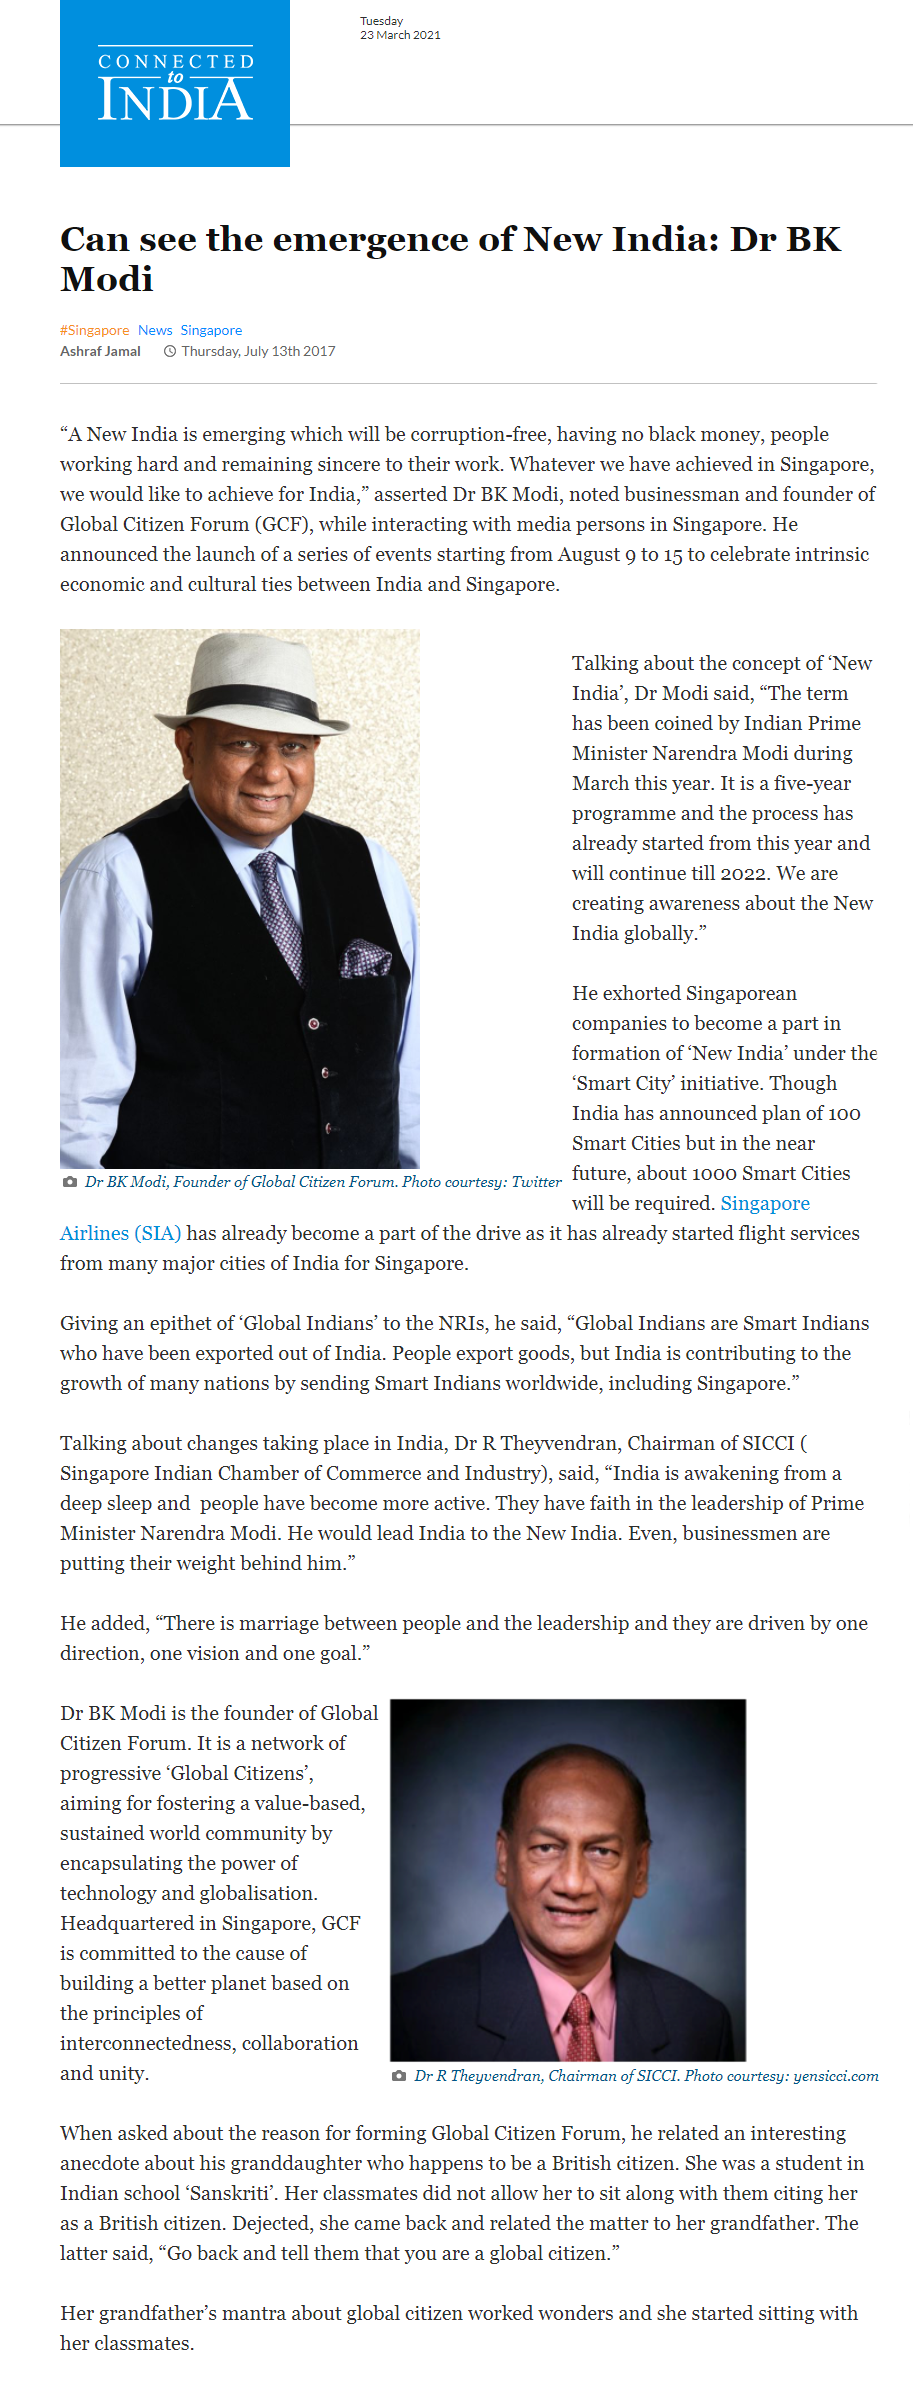 Dr. M featured in Connected to India